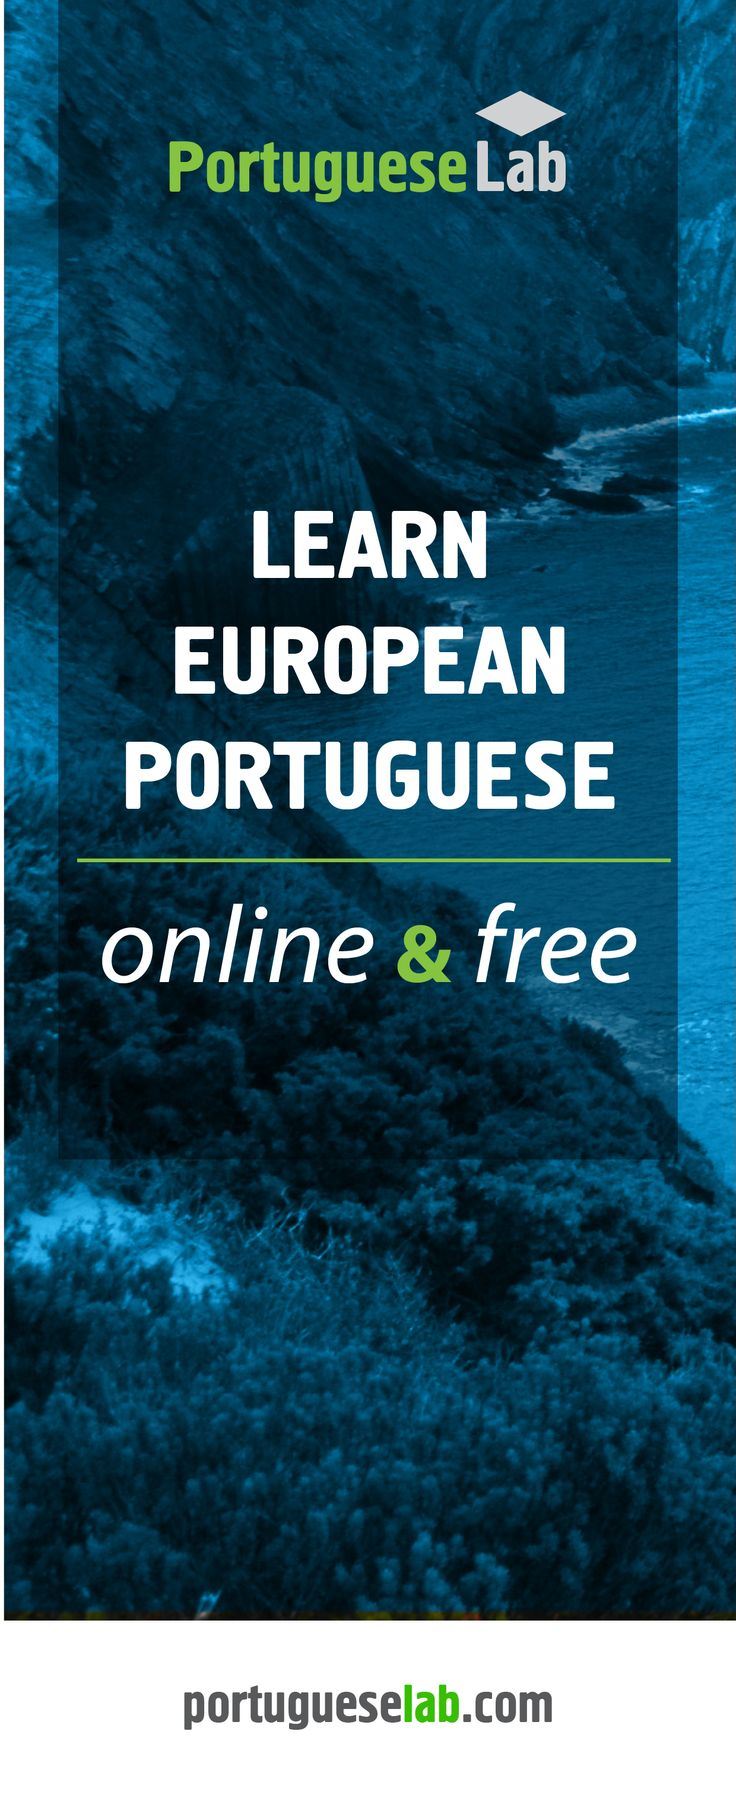 Learn European Portuguese online & free with the Portuguese Lab. Access the podcast, relared resources (PDF) for download (transcript, translation, exercises with key and extra audio files), workbooks and grammar charts and free live workshops! For beginners, intermediate and advanced learners, practice your Portuguese with the Portuguese Lab.